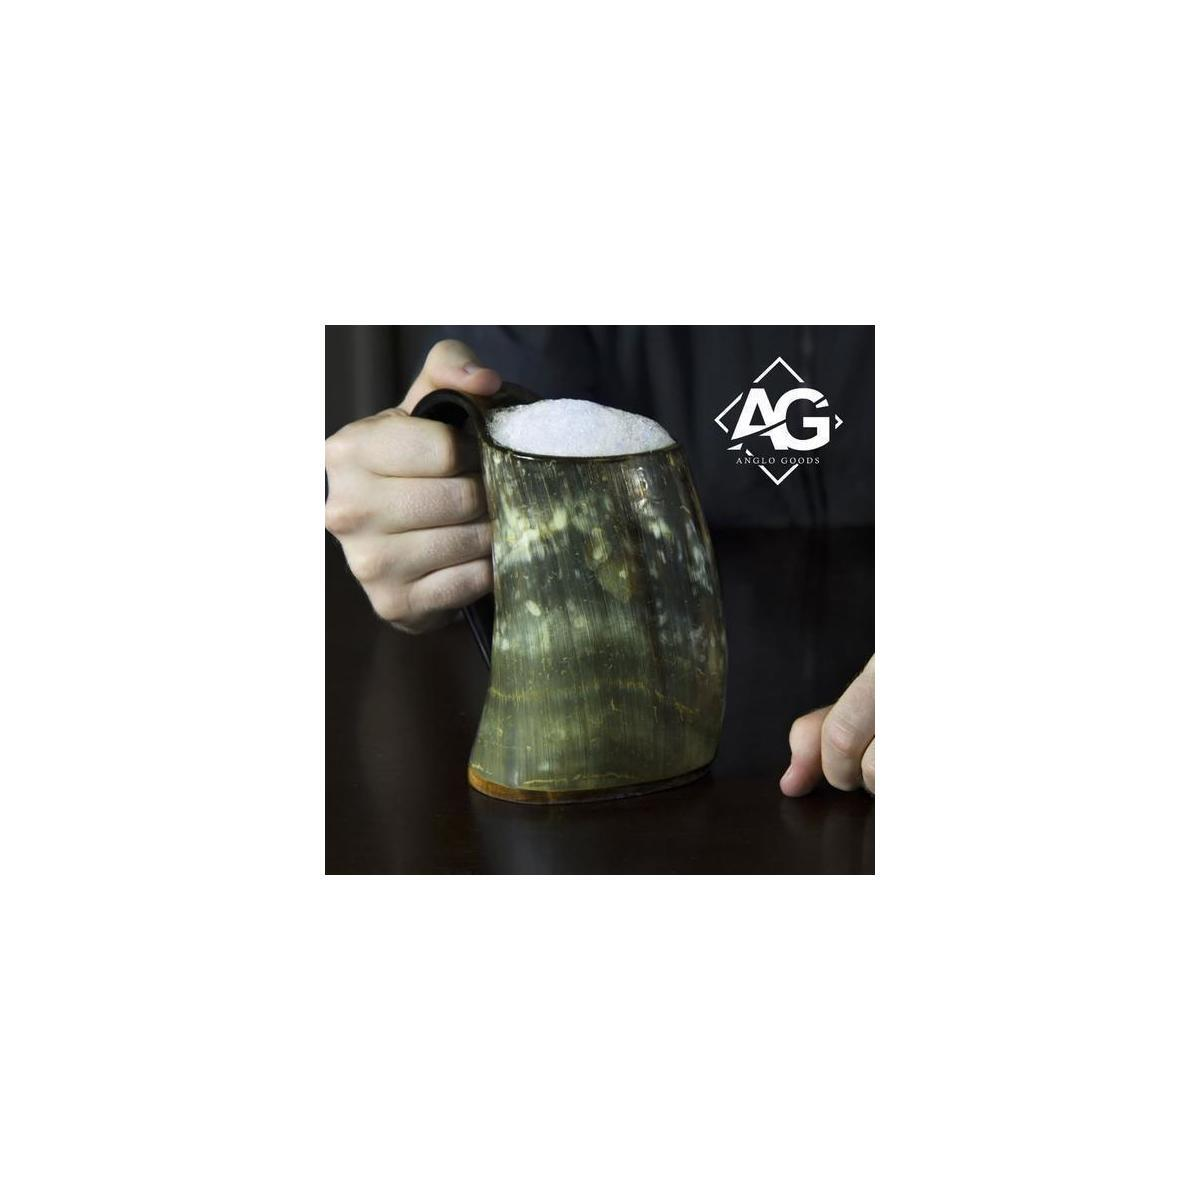 AngloGoods Handcrafted Ale Horn (20oz) Viking Drinking Horn Mug.Drink Mead & Beer Like A Real Viking. (Multi-color) (Multi color)